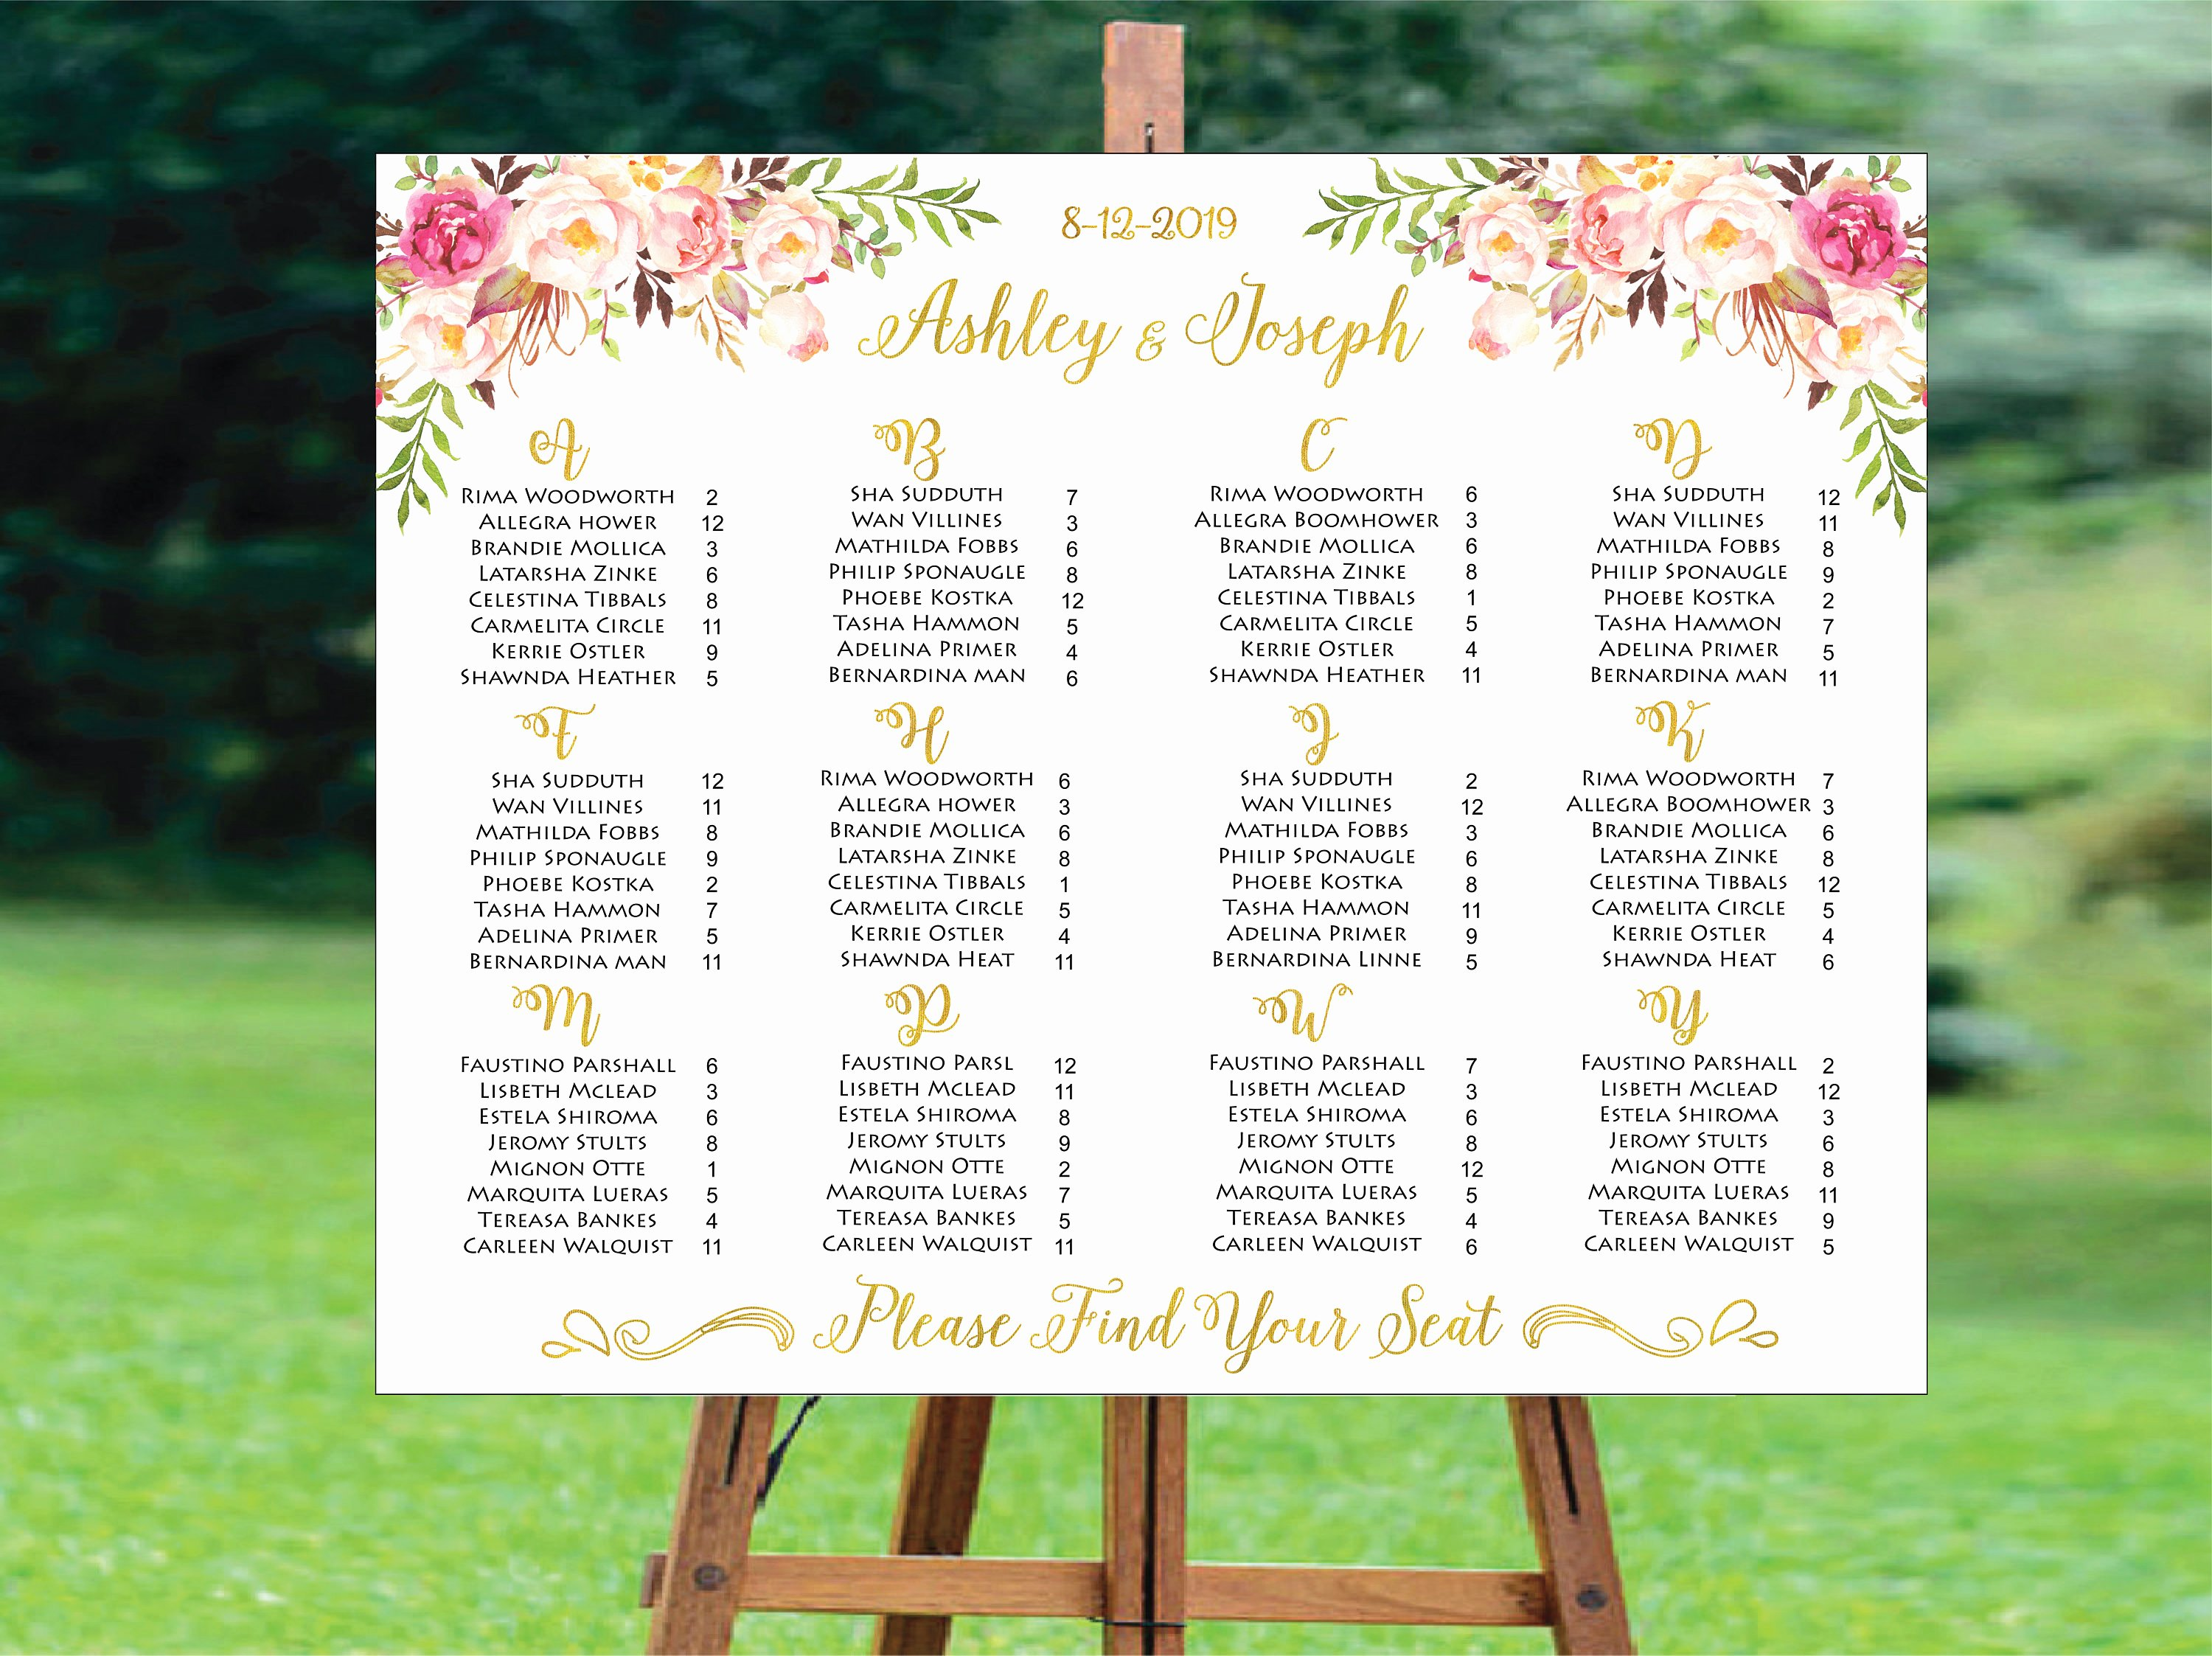 Wedding Seating Chart Alphabetical Lovely Wedding Seating Chart Alphabetical Wedding Seating Chart